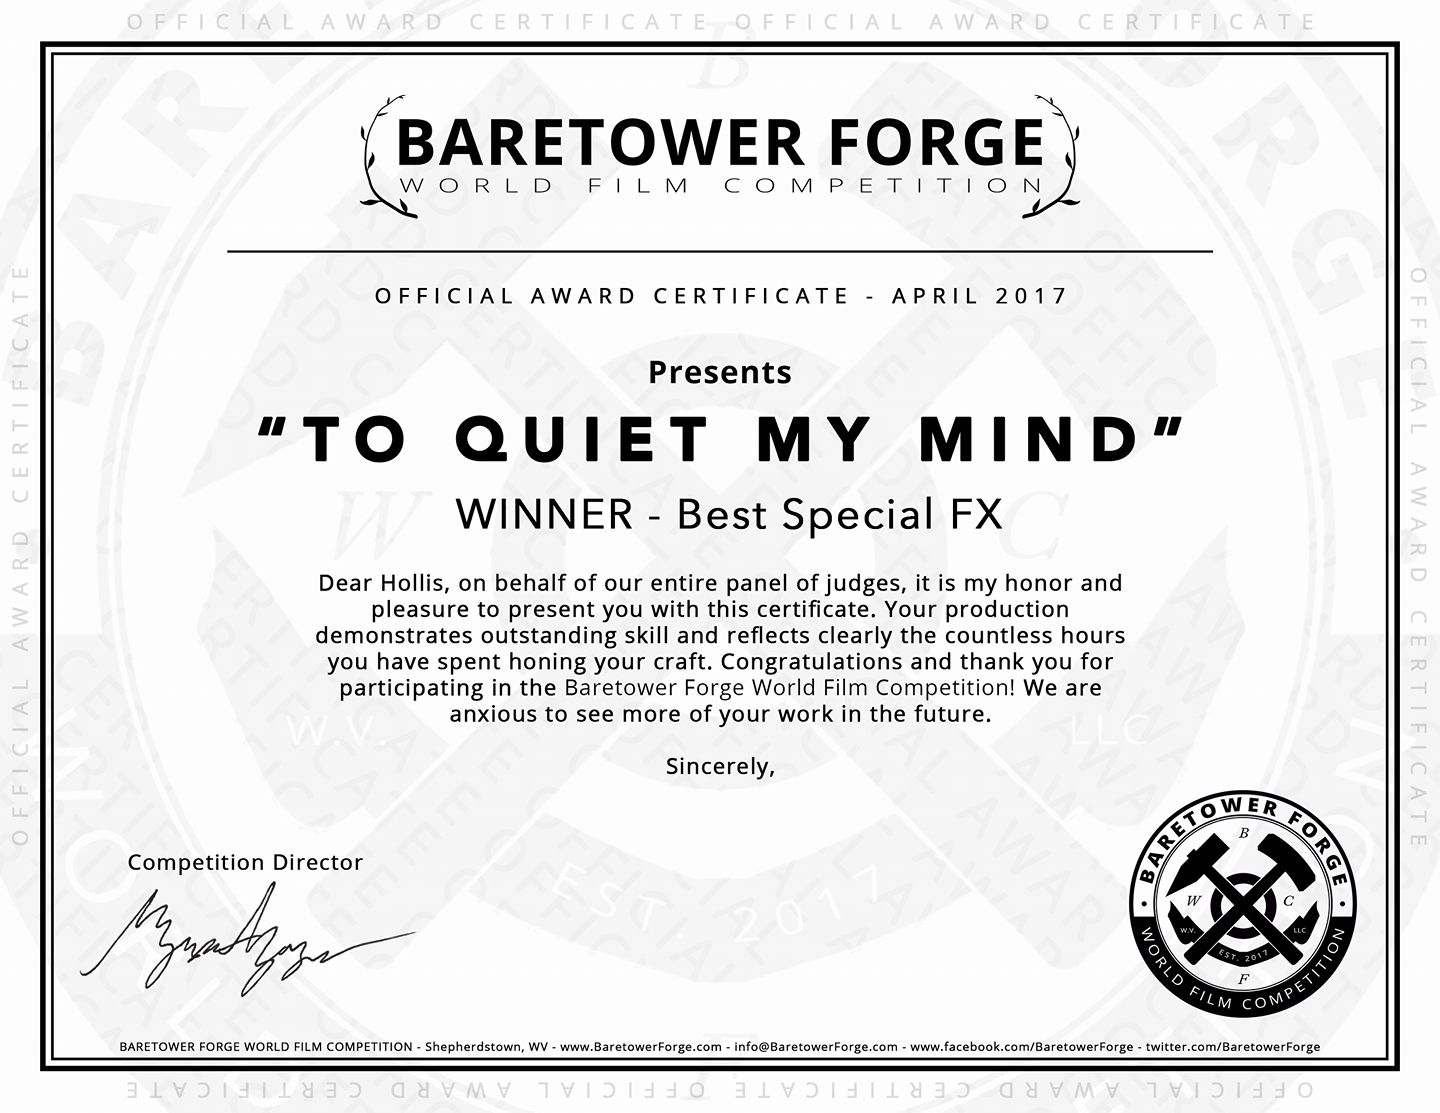 - TO QUIET MY MINDfirst screening and first award!* Best Special Effects (Damien Nemire-Pepe)West Virginiahttp://baretowerforge.com/